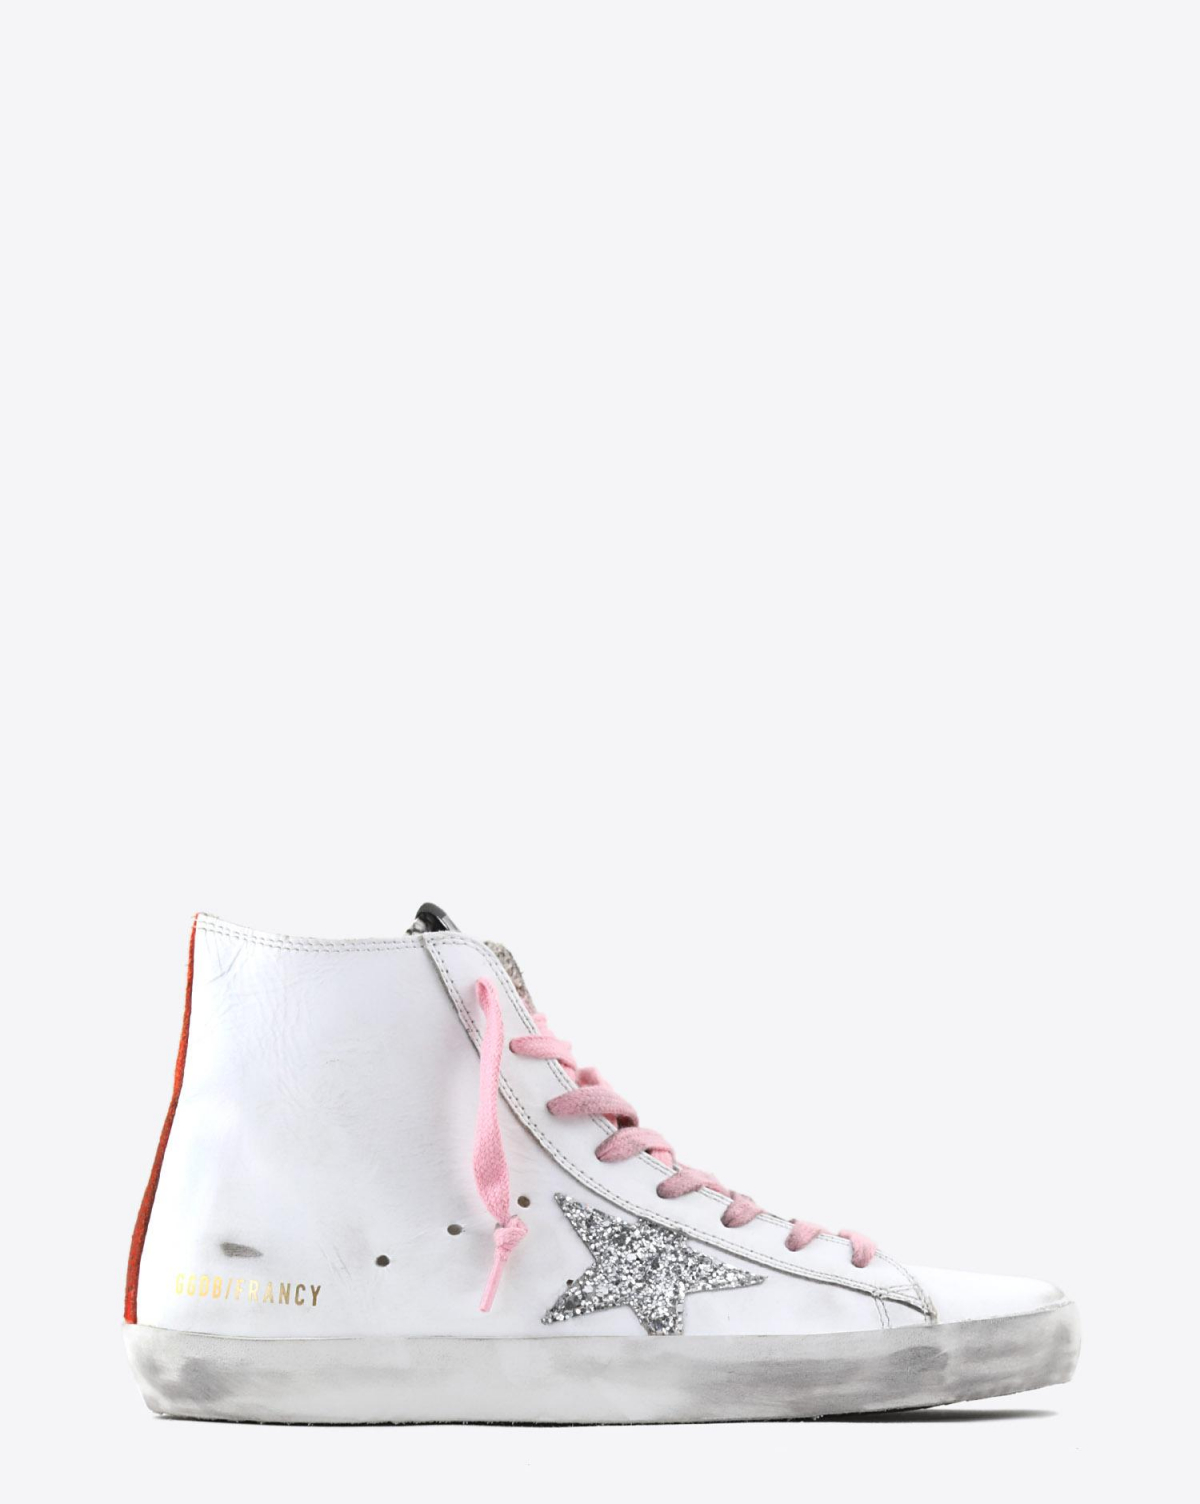 Golden Goose Woman Collection Sneakers Francy - White Leather - Silver Glitter Star